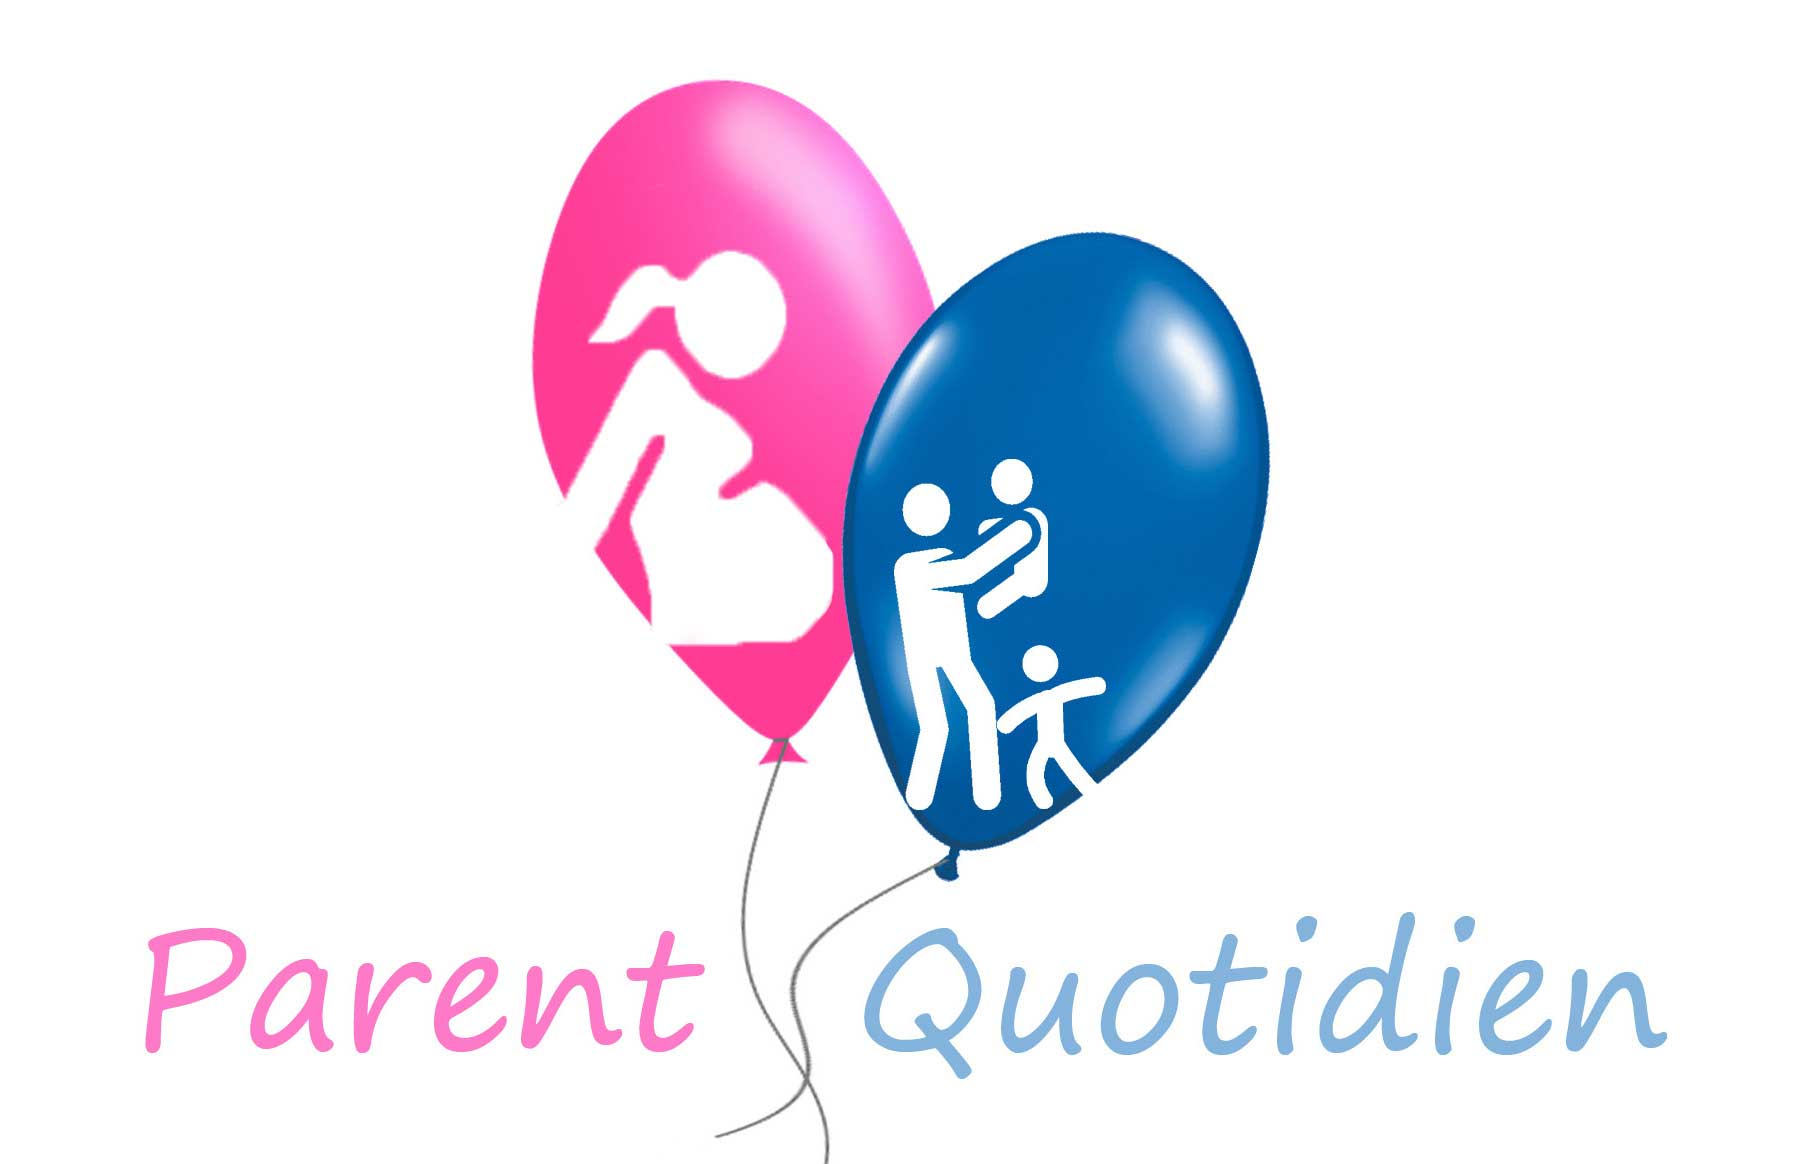 Parent au quotidien